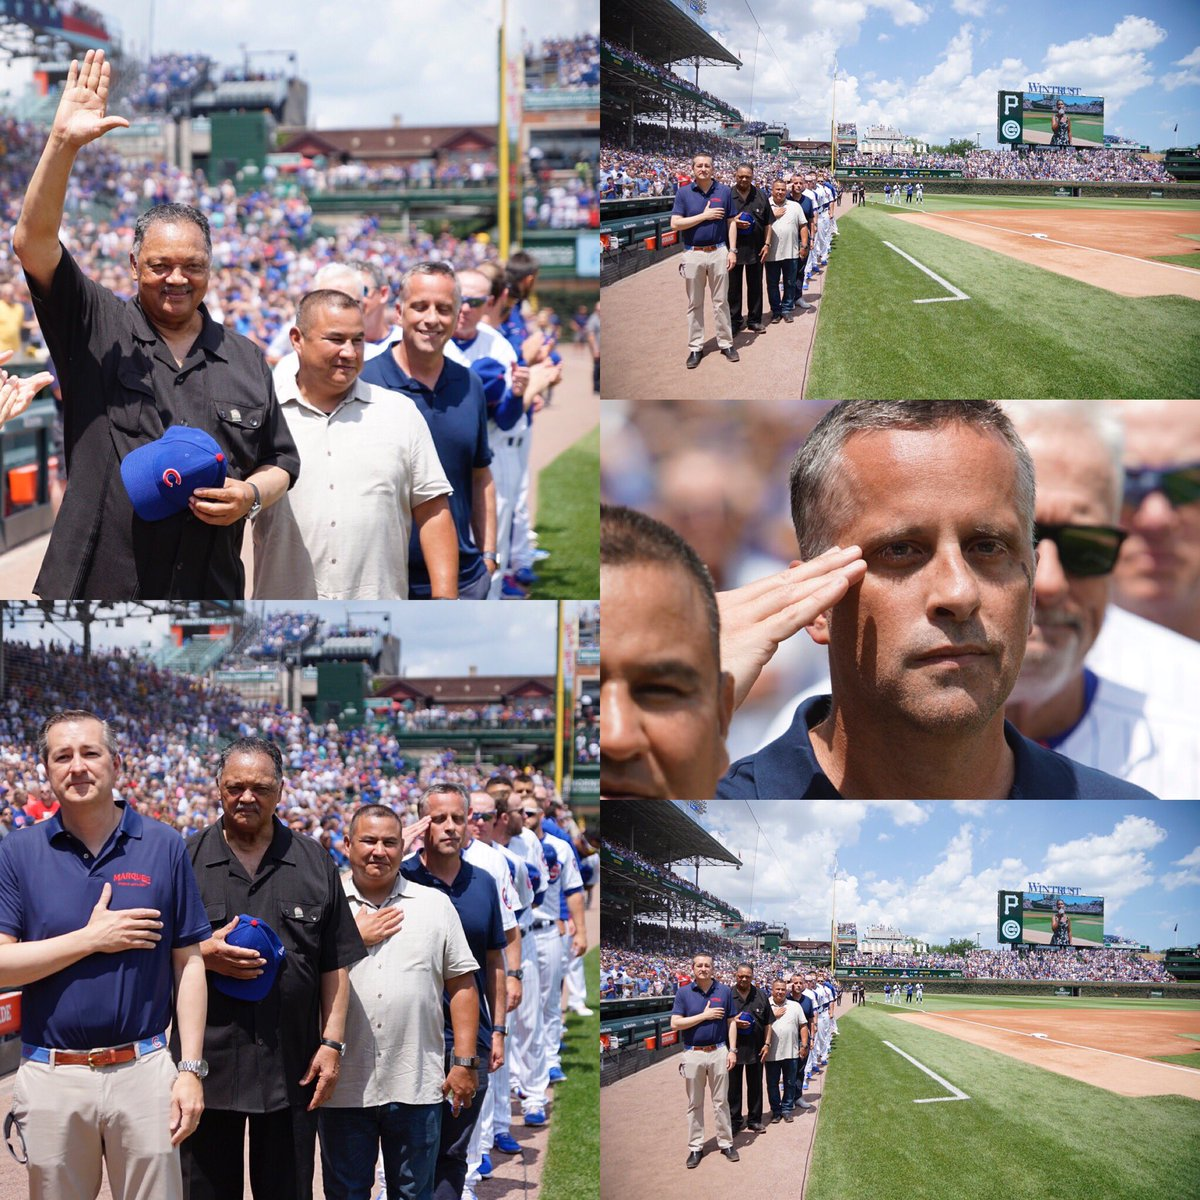 Returning for another proud moment... Thank you @Cubs for honoring our efforts & soldiers, Staff Sgt. Andrew Ramirez, Staff Sgt. Christopher Stone during today's game. I had the privilege of negotiating their release from the Balkans, 20 years ago during a bloody war. #FreeAtLast